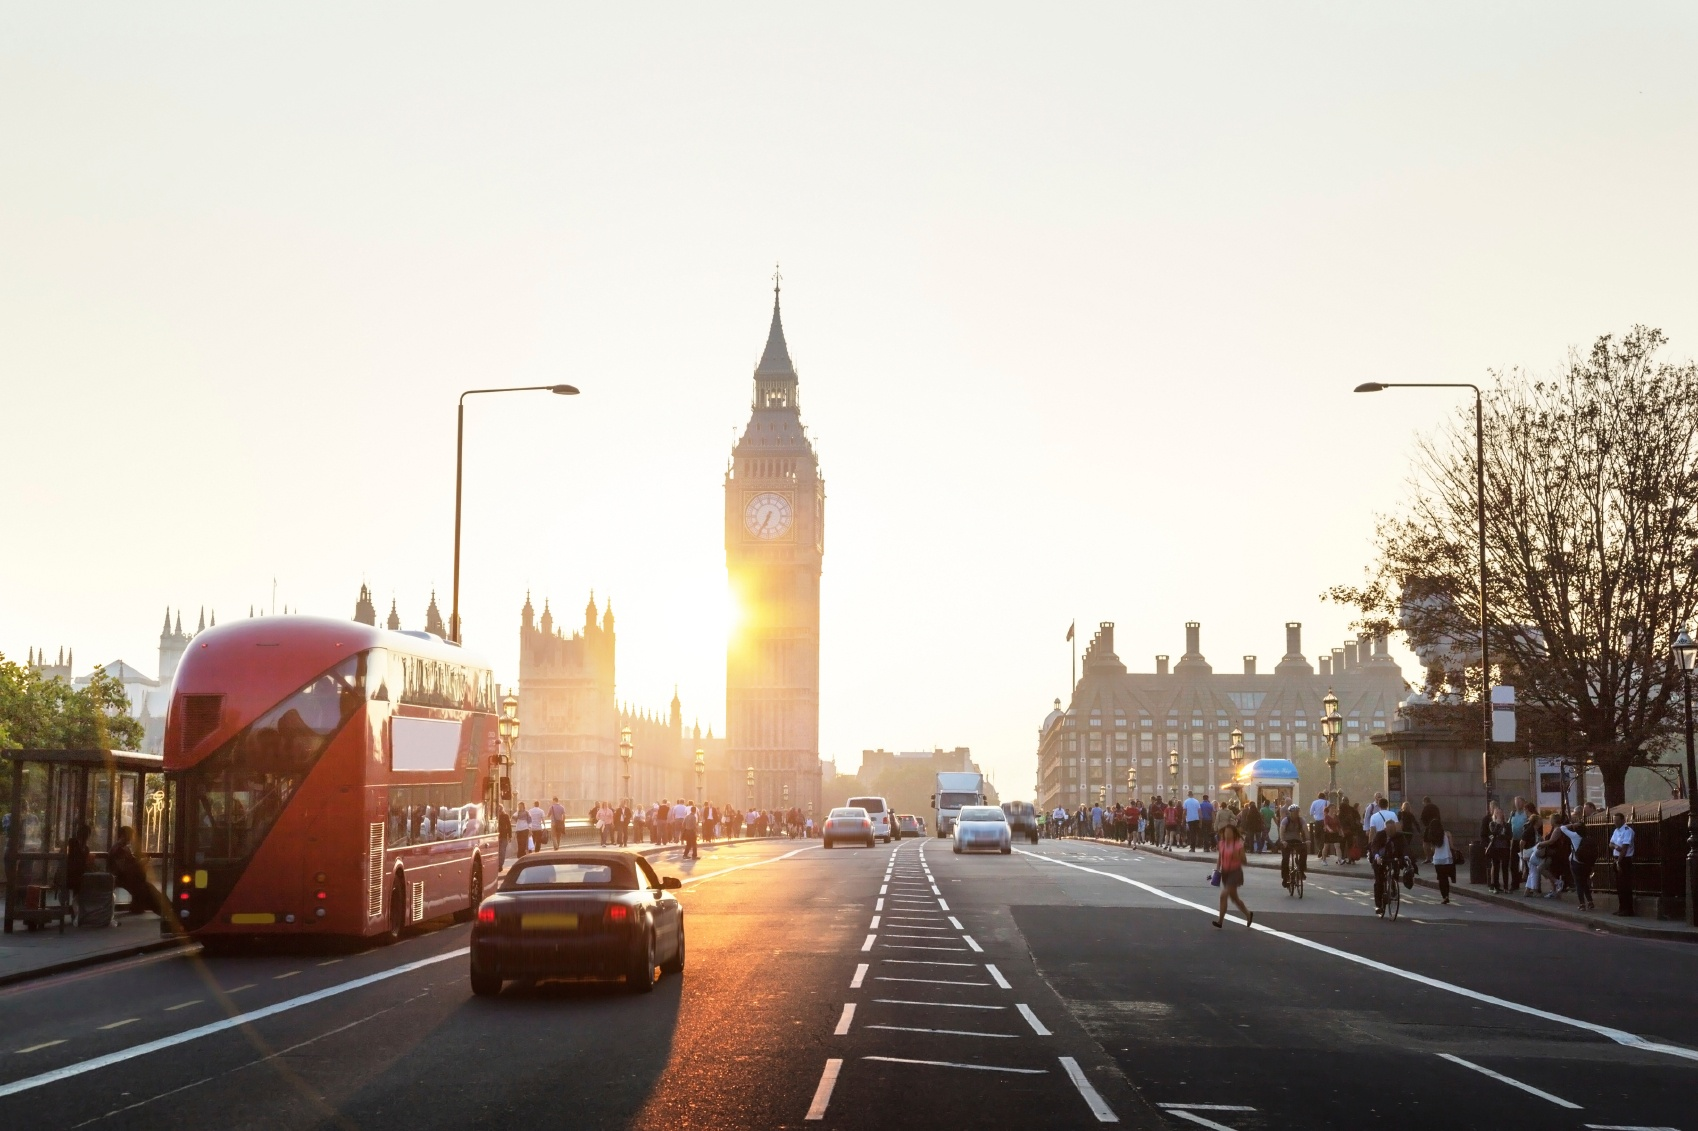 Westminster-Bridge-at-sunset-London-UK-000060726182_Medium.jpg